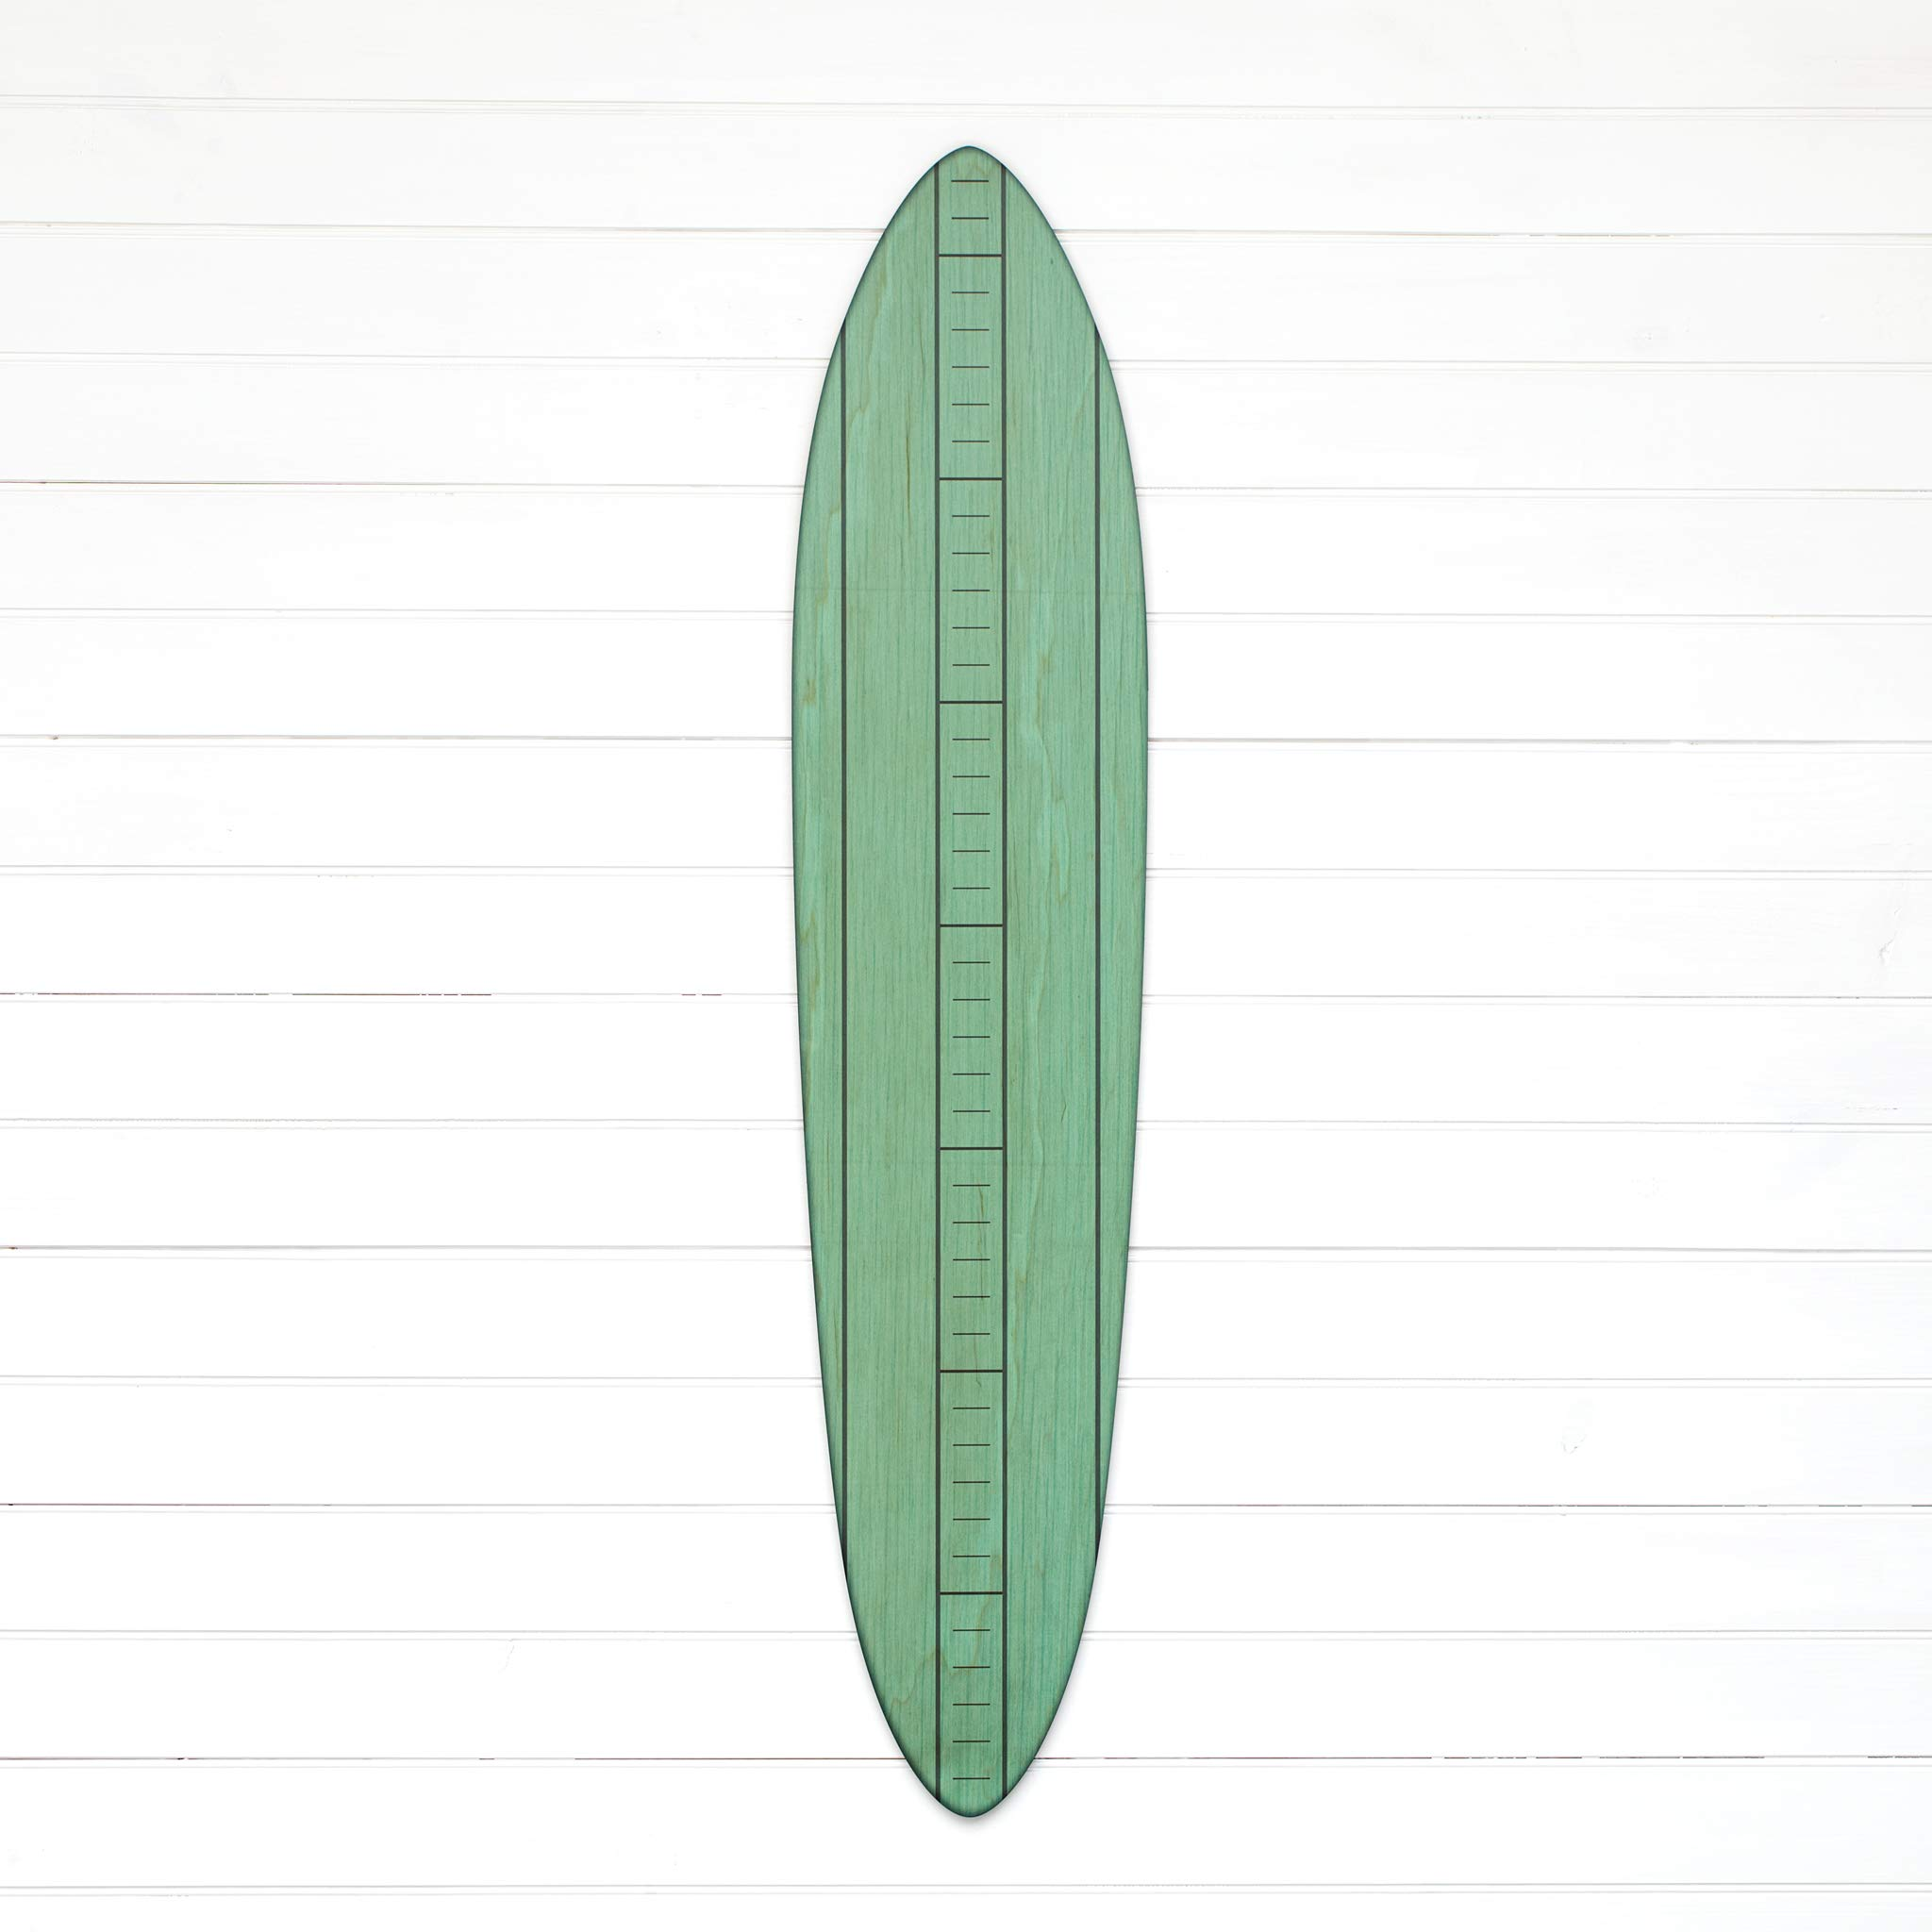 Vintage Wooden Surfboard Growth Chart | Wood Height Chart for Boys, Girls & Kids (Teal) by Growth Chart Art